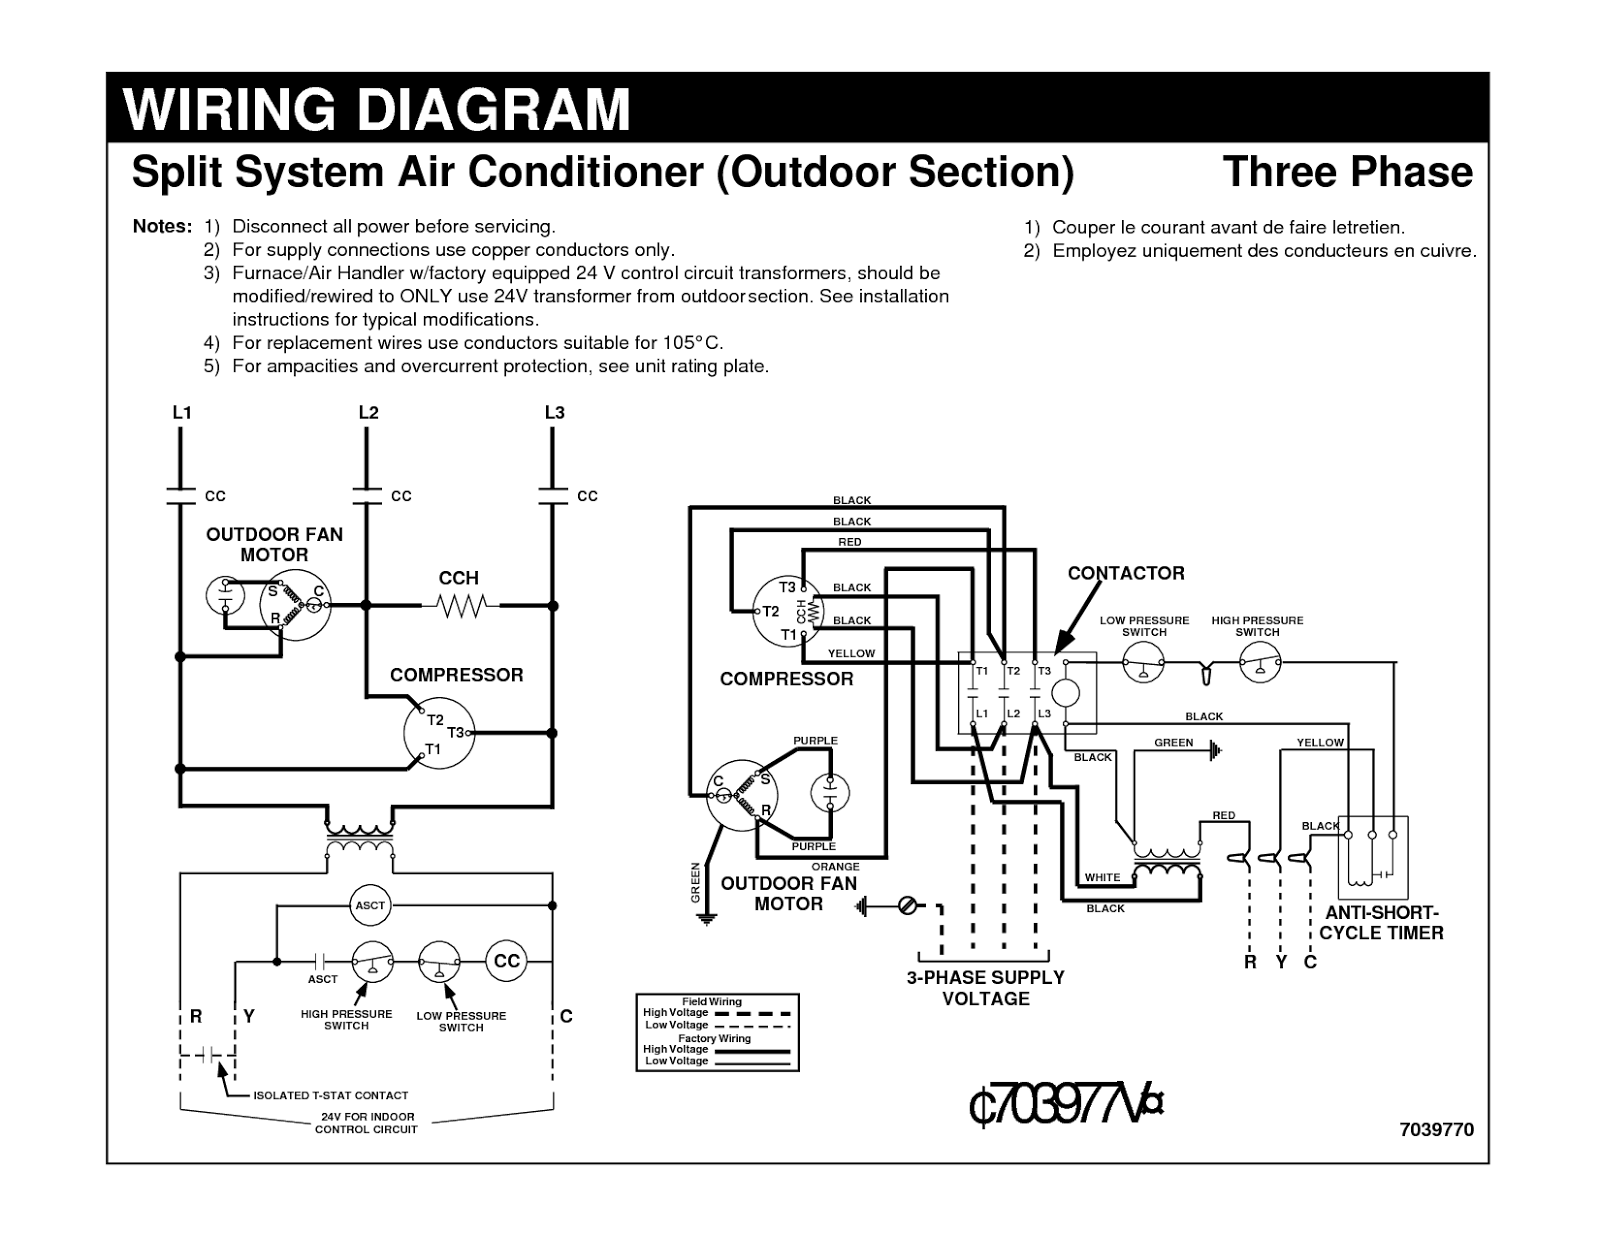 Basic Air Conditioning Wiring Diagram - 13.5.geuzencollege ... on air conditioner functions, air conditioner line drawing, basic refrigeration cycle diagram, air handler diagram, air conditioner outlet, air conditioner process, air conditioning components diagram, truck in air conditioning wiring diagram, air conditioner overhead view, electric hot water tank wiring diagram, air conditioner how it works, how air conditioning works diagram, air conditioner troubleshooting, 2006 ford mustang ac wiring diagram, air conditioner plan view, air conditioning system schematic, air conditioner parts, air conditioning cycle diagram, air conditioning cycle basic, air conditioning air flow direction,